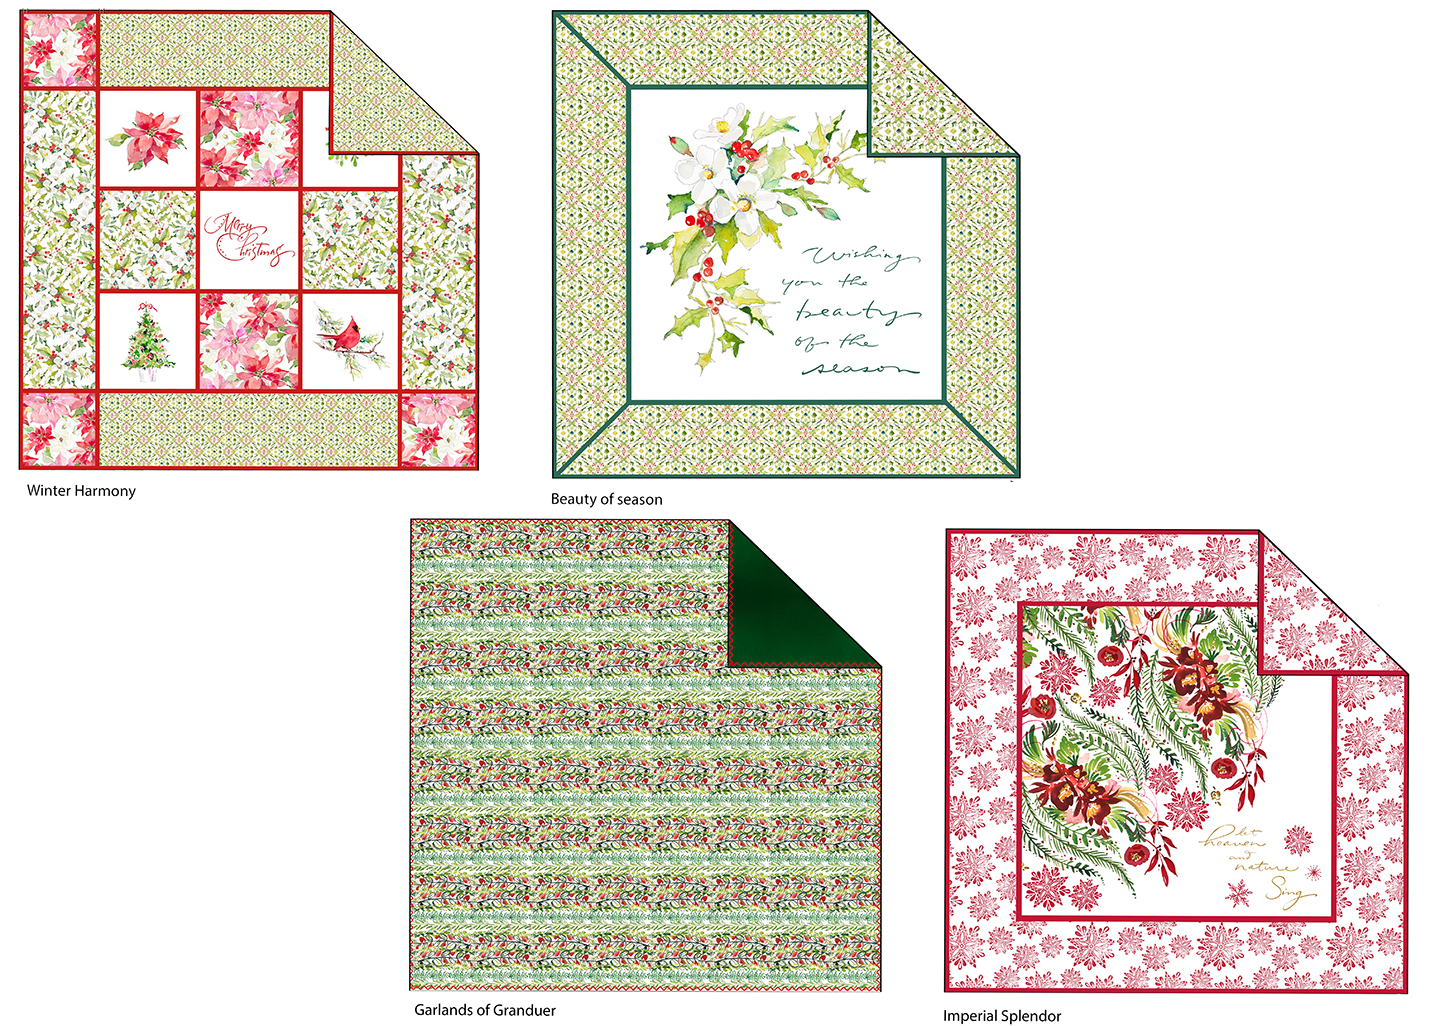 SJ HOLIDAY_QUILT_BOARD.jpg